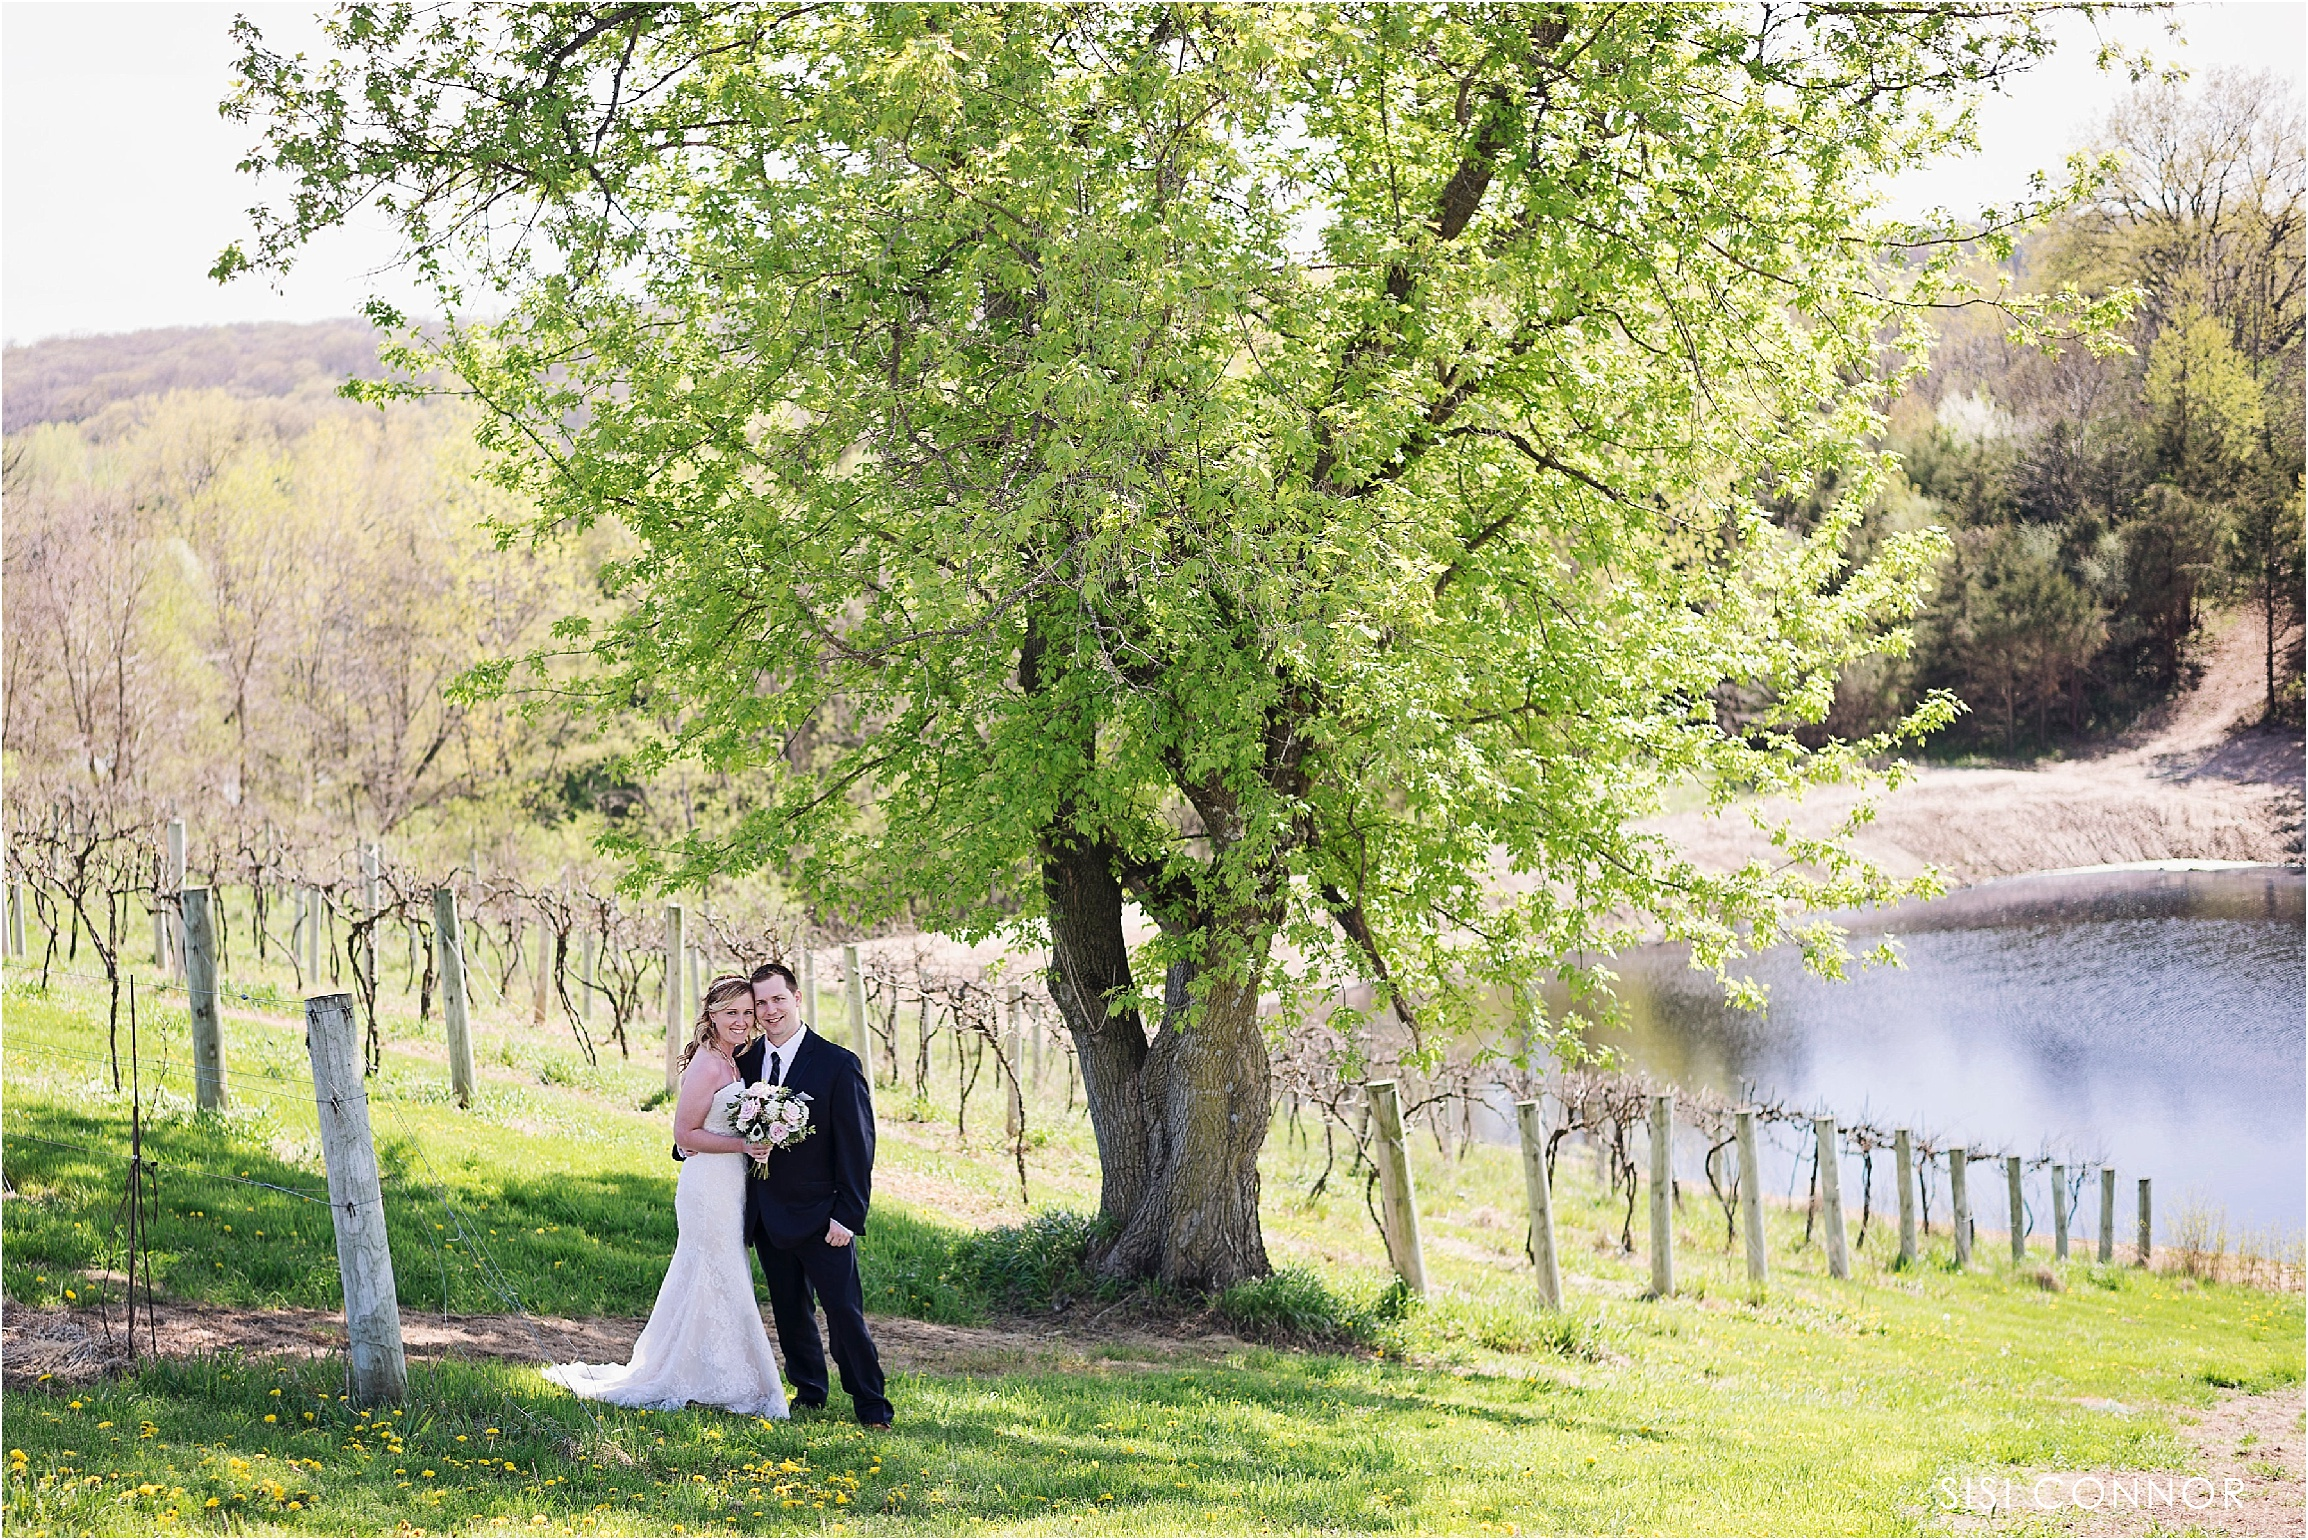 Wedding at Cedar Ridge Winery and Distillery